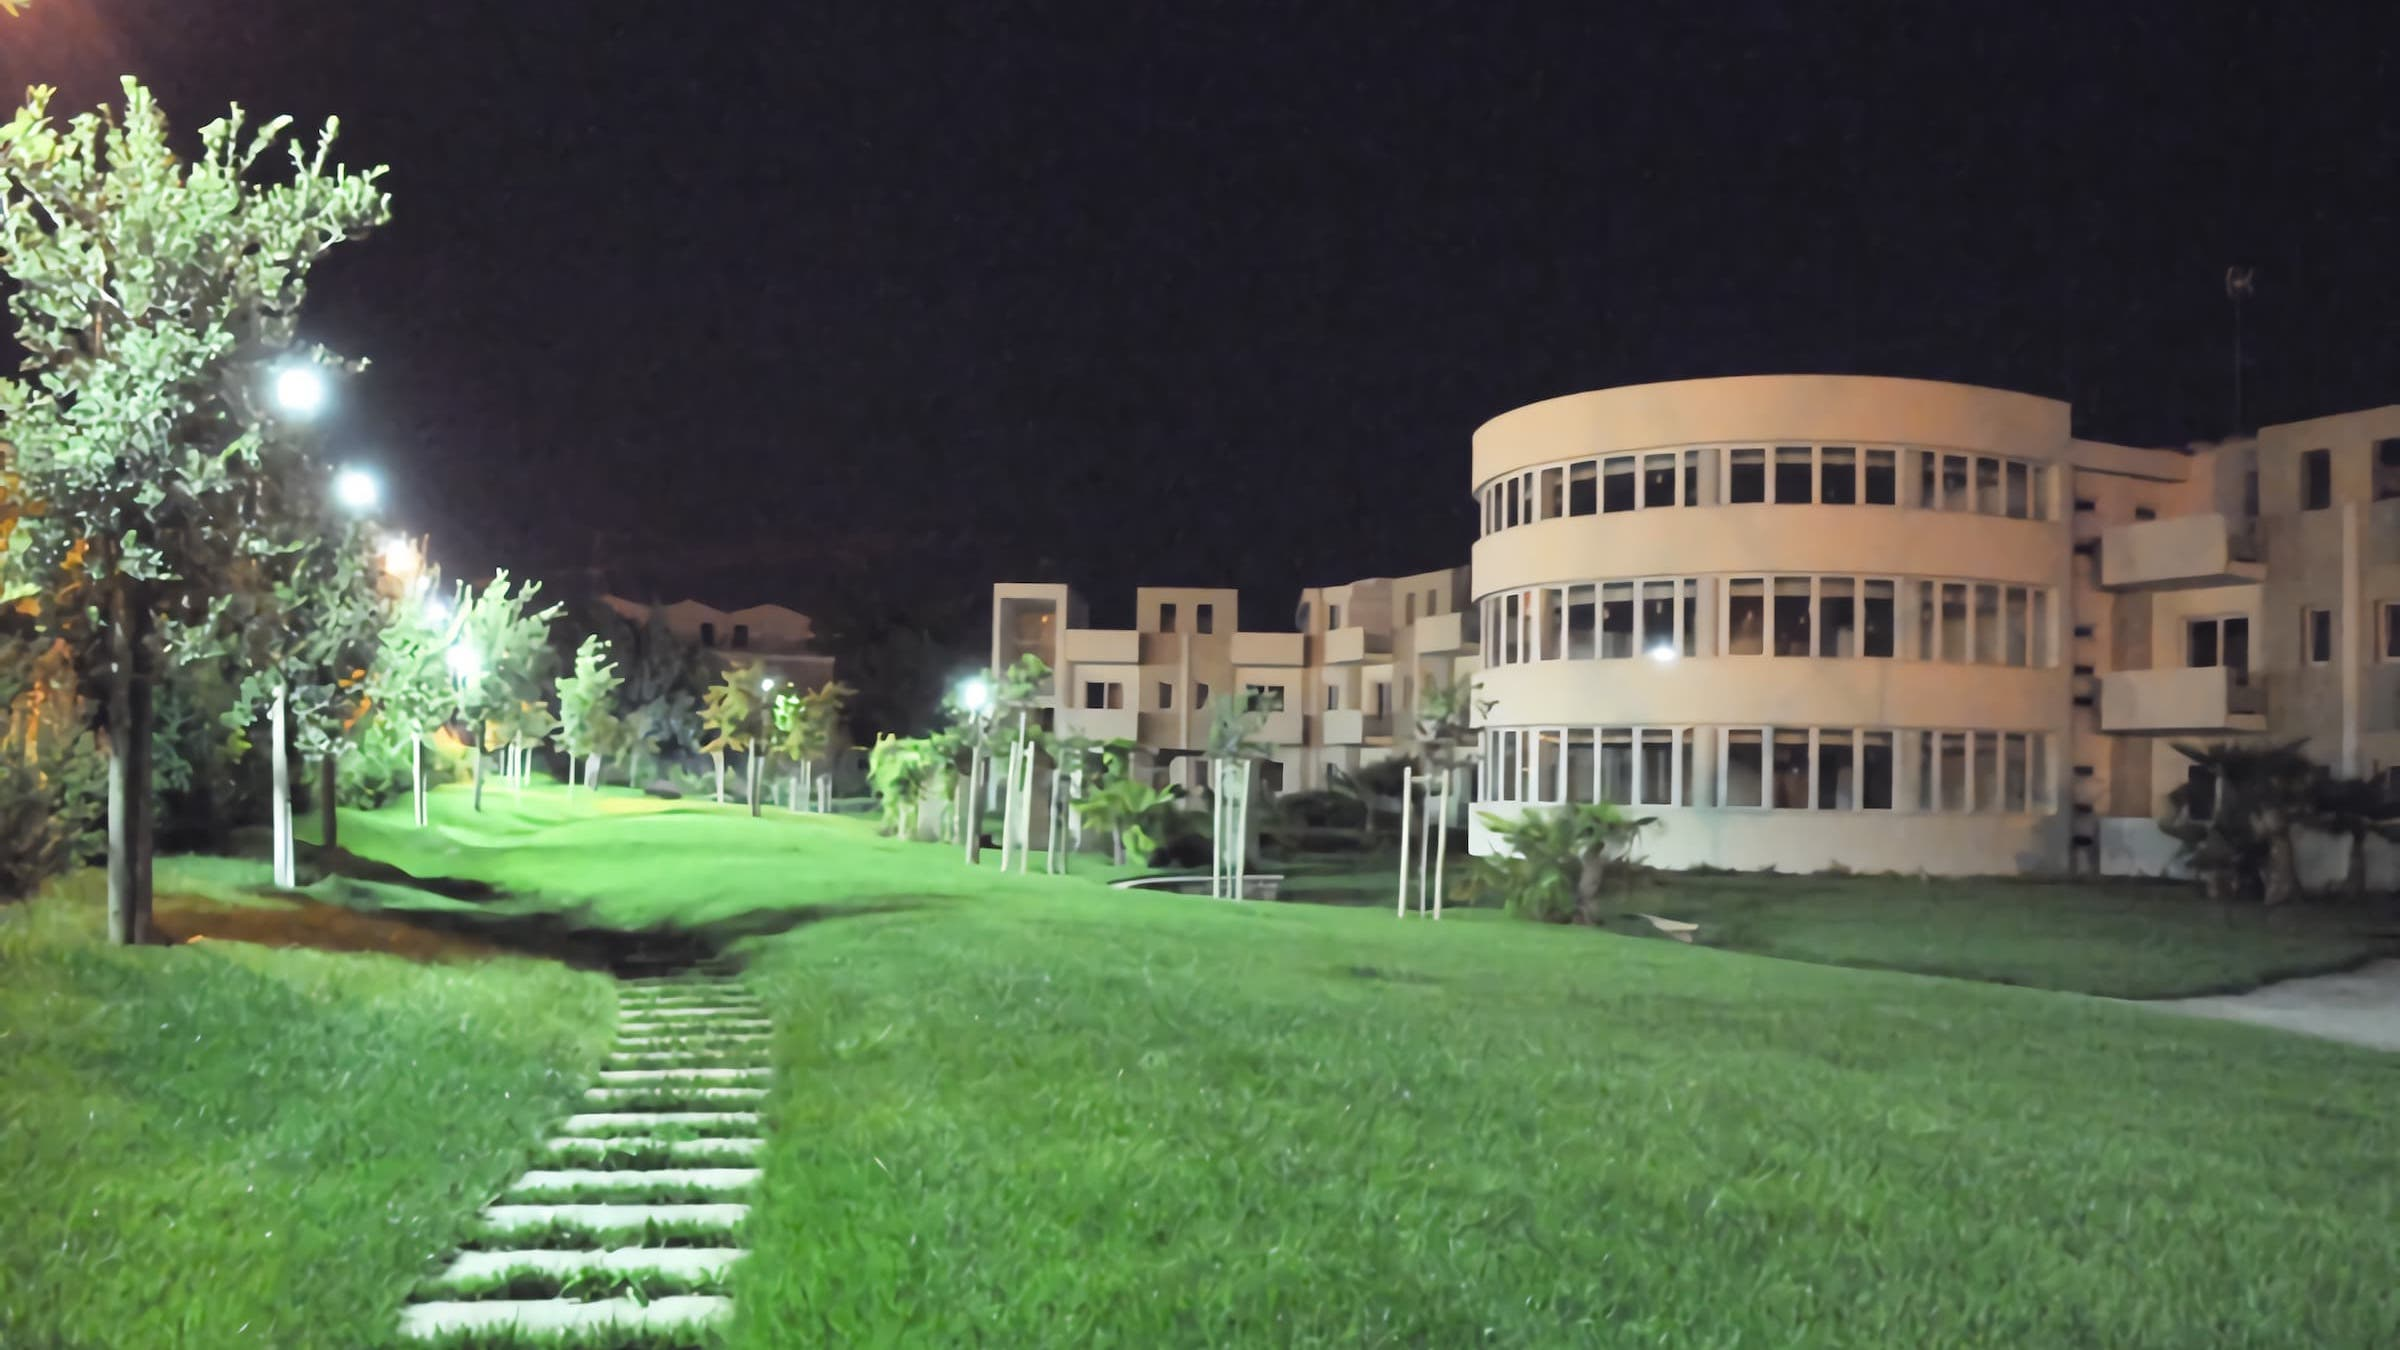 LED street Light in Corato of Italy,LED Street Lamp power 60W, street poles' height 8 meters, LED street Light project is finally done in Corato of Italy